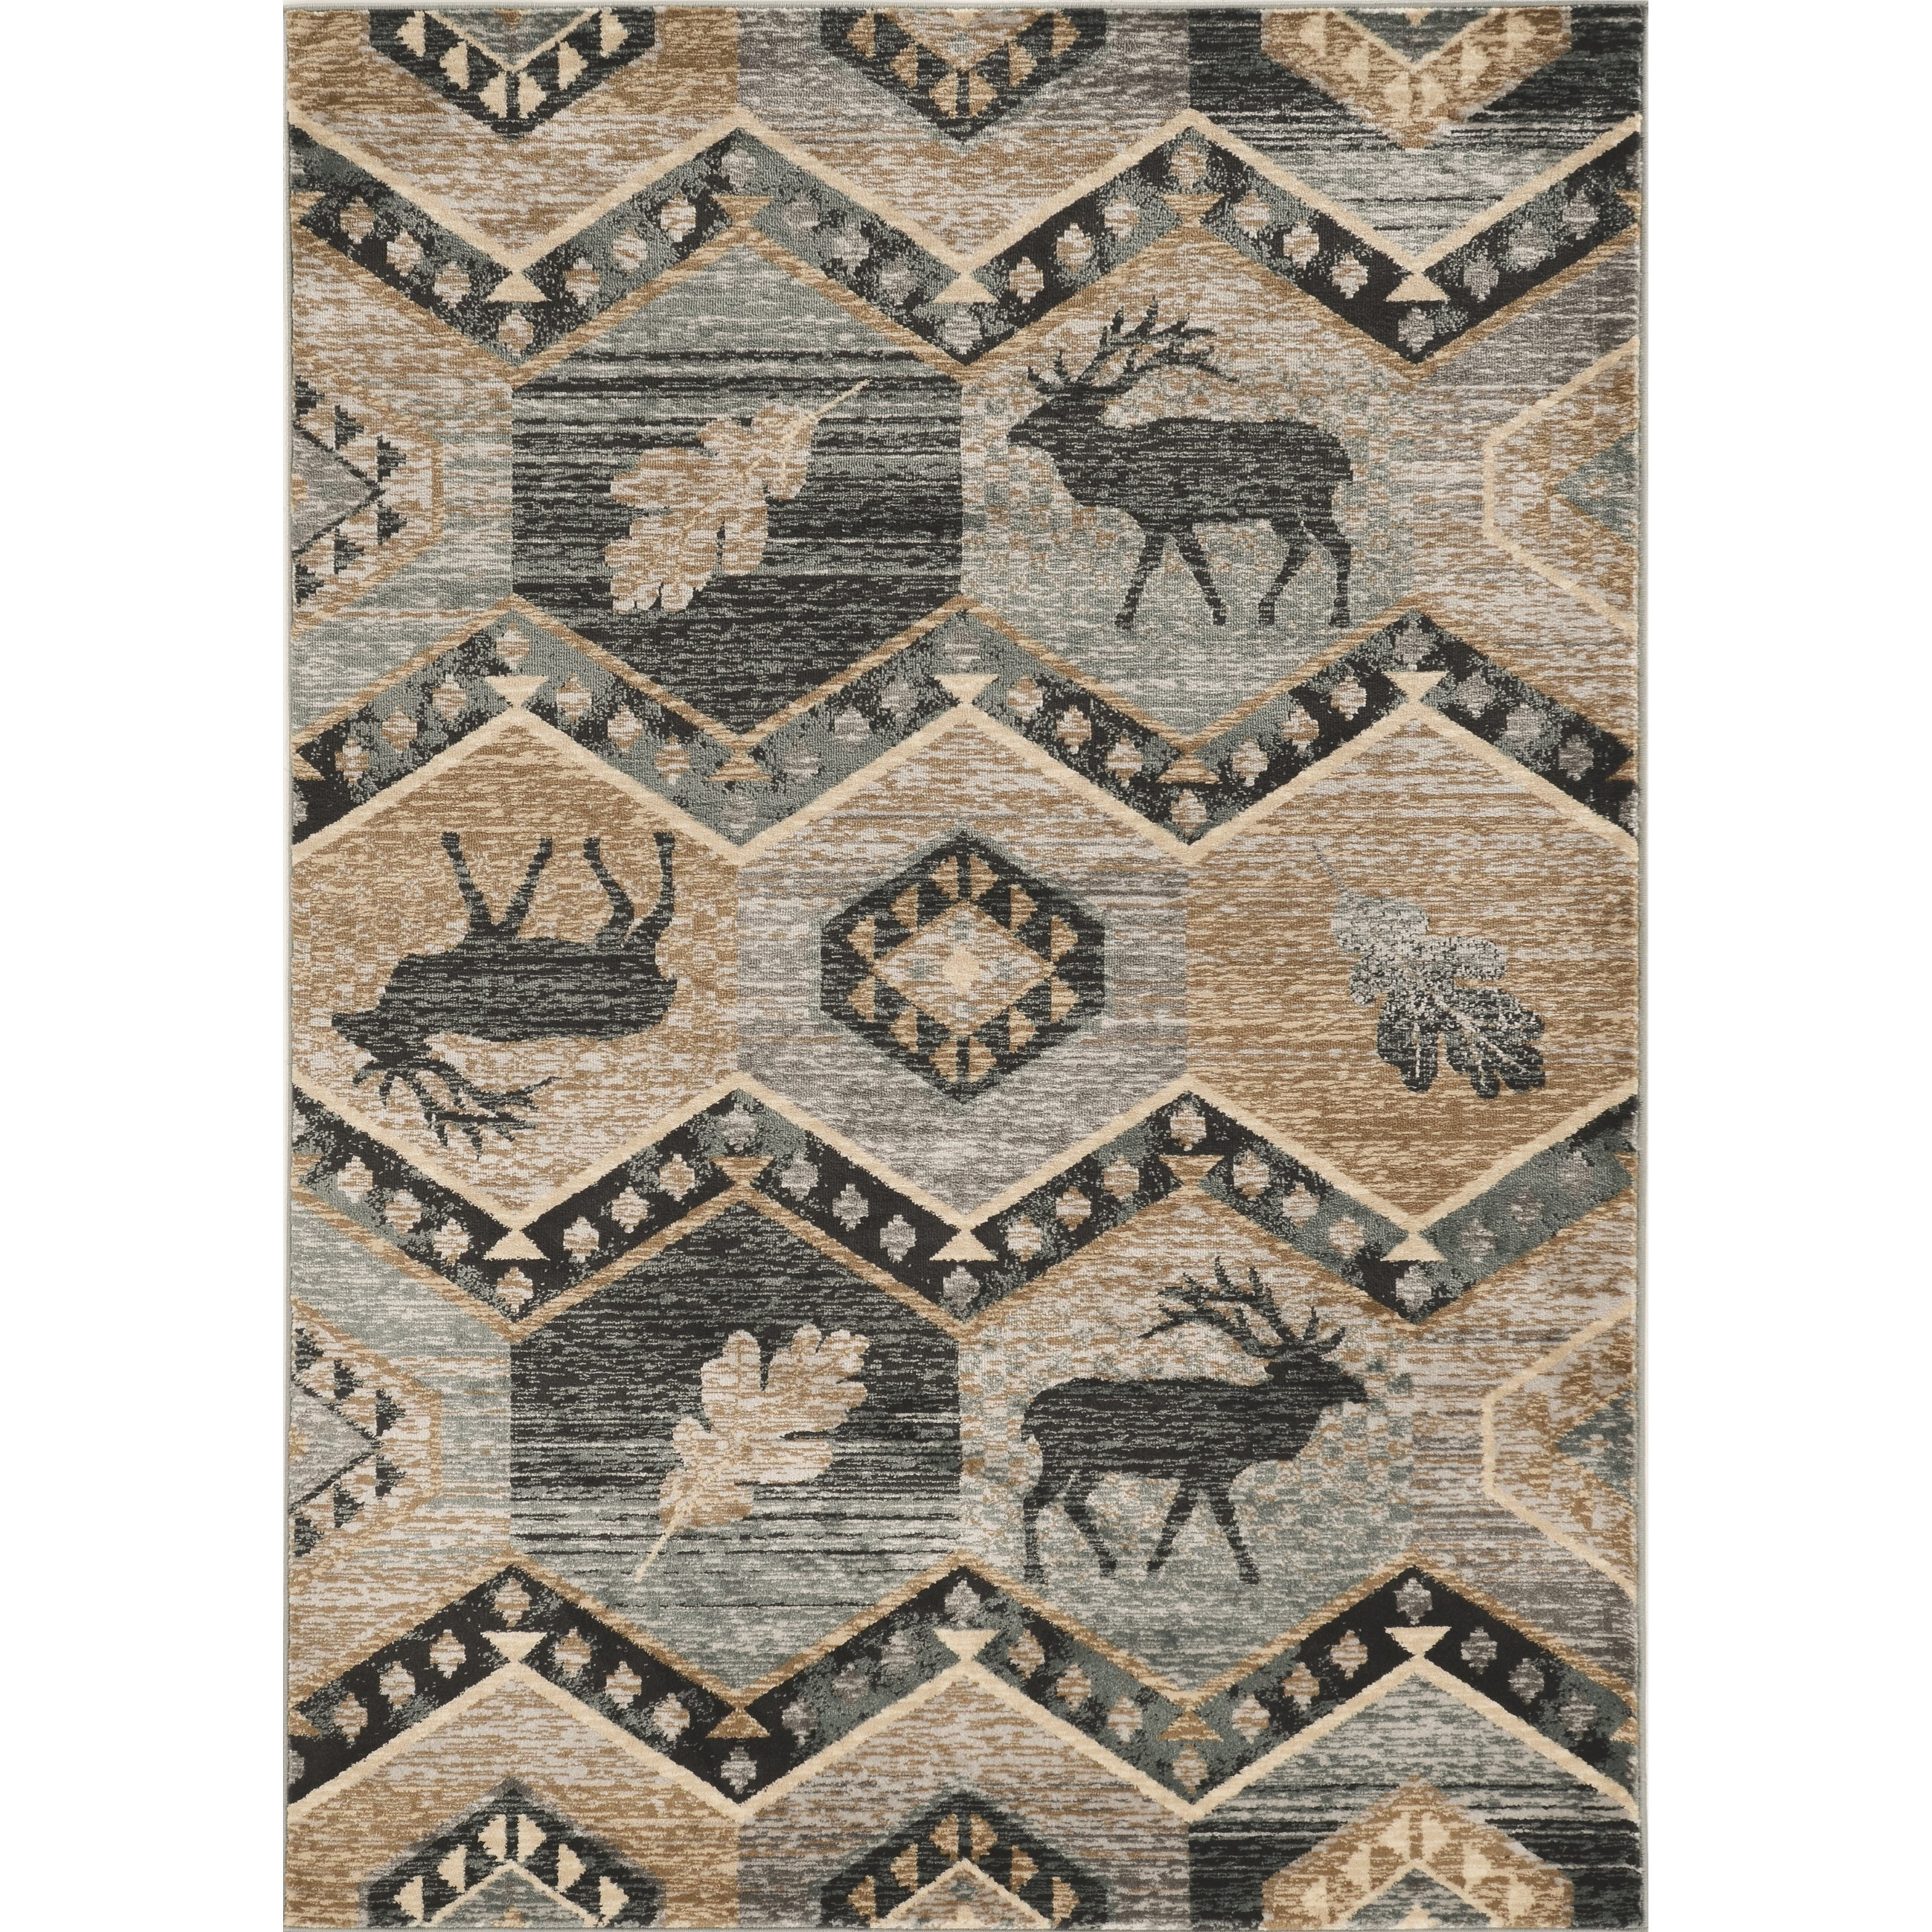 Chester 9' x 12' Seafoam Woodlands Rug by Kas at Darvin Furniture